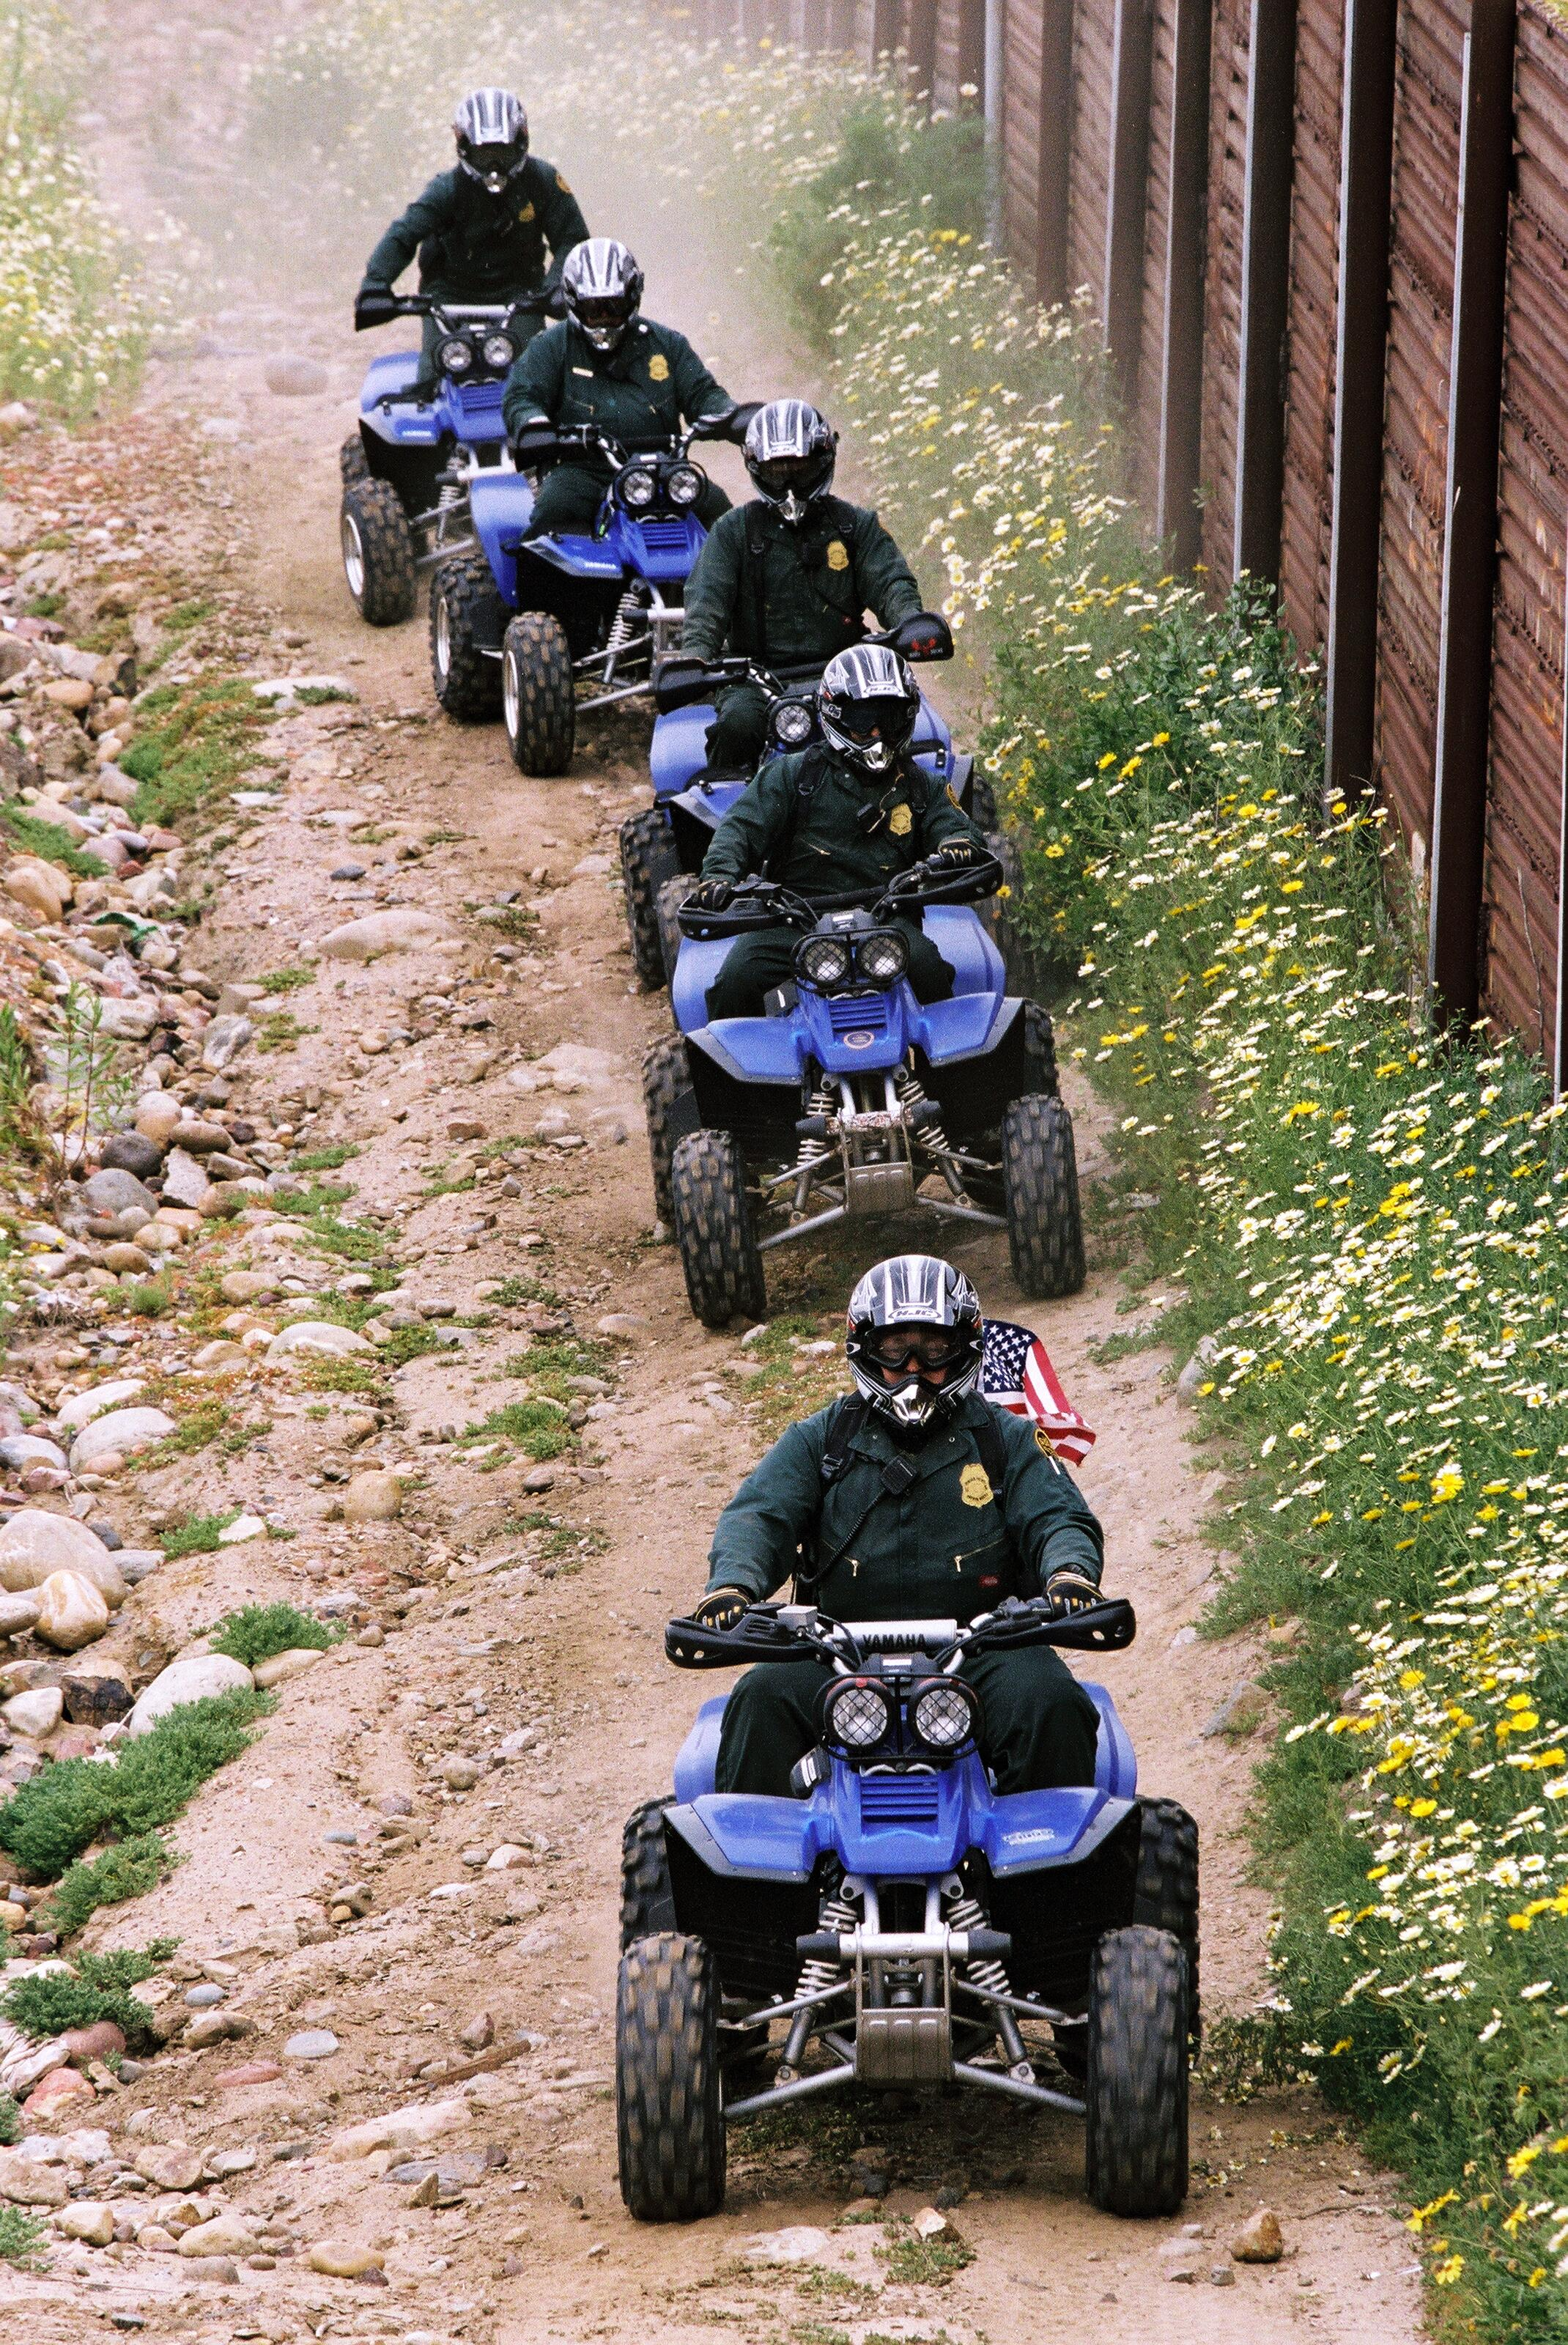 Border Patrol agents makes use of All Terrain Vehicles to patrol along the rugged border with Mexico.